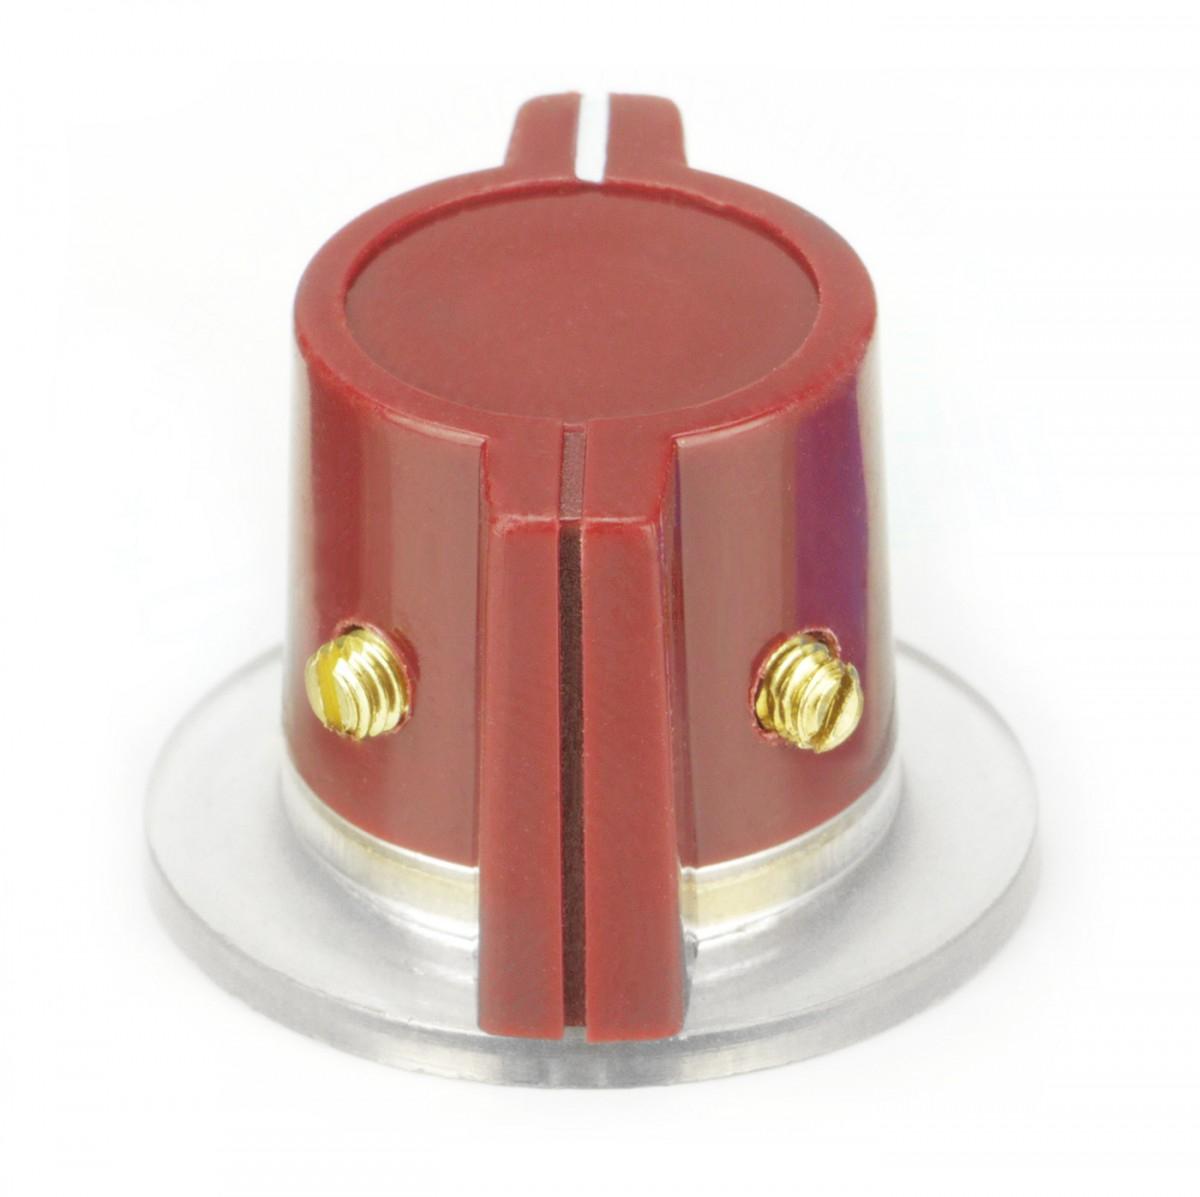 Classic Marconi knob, skirted, red